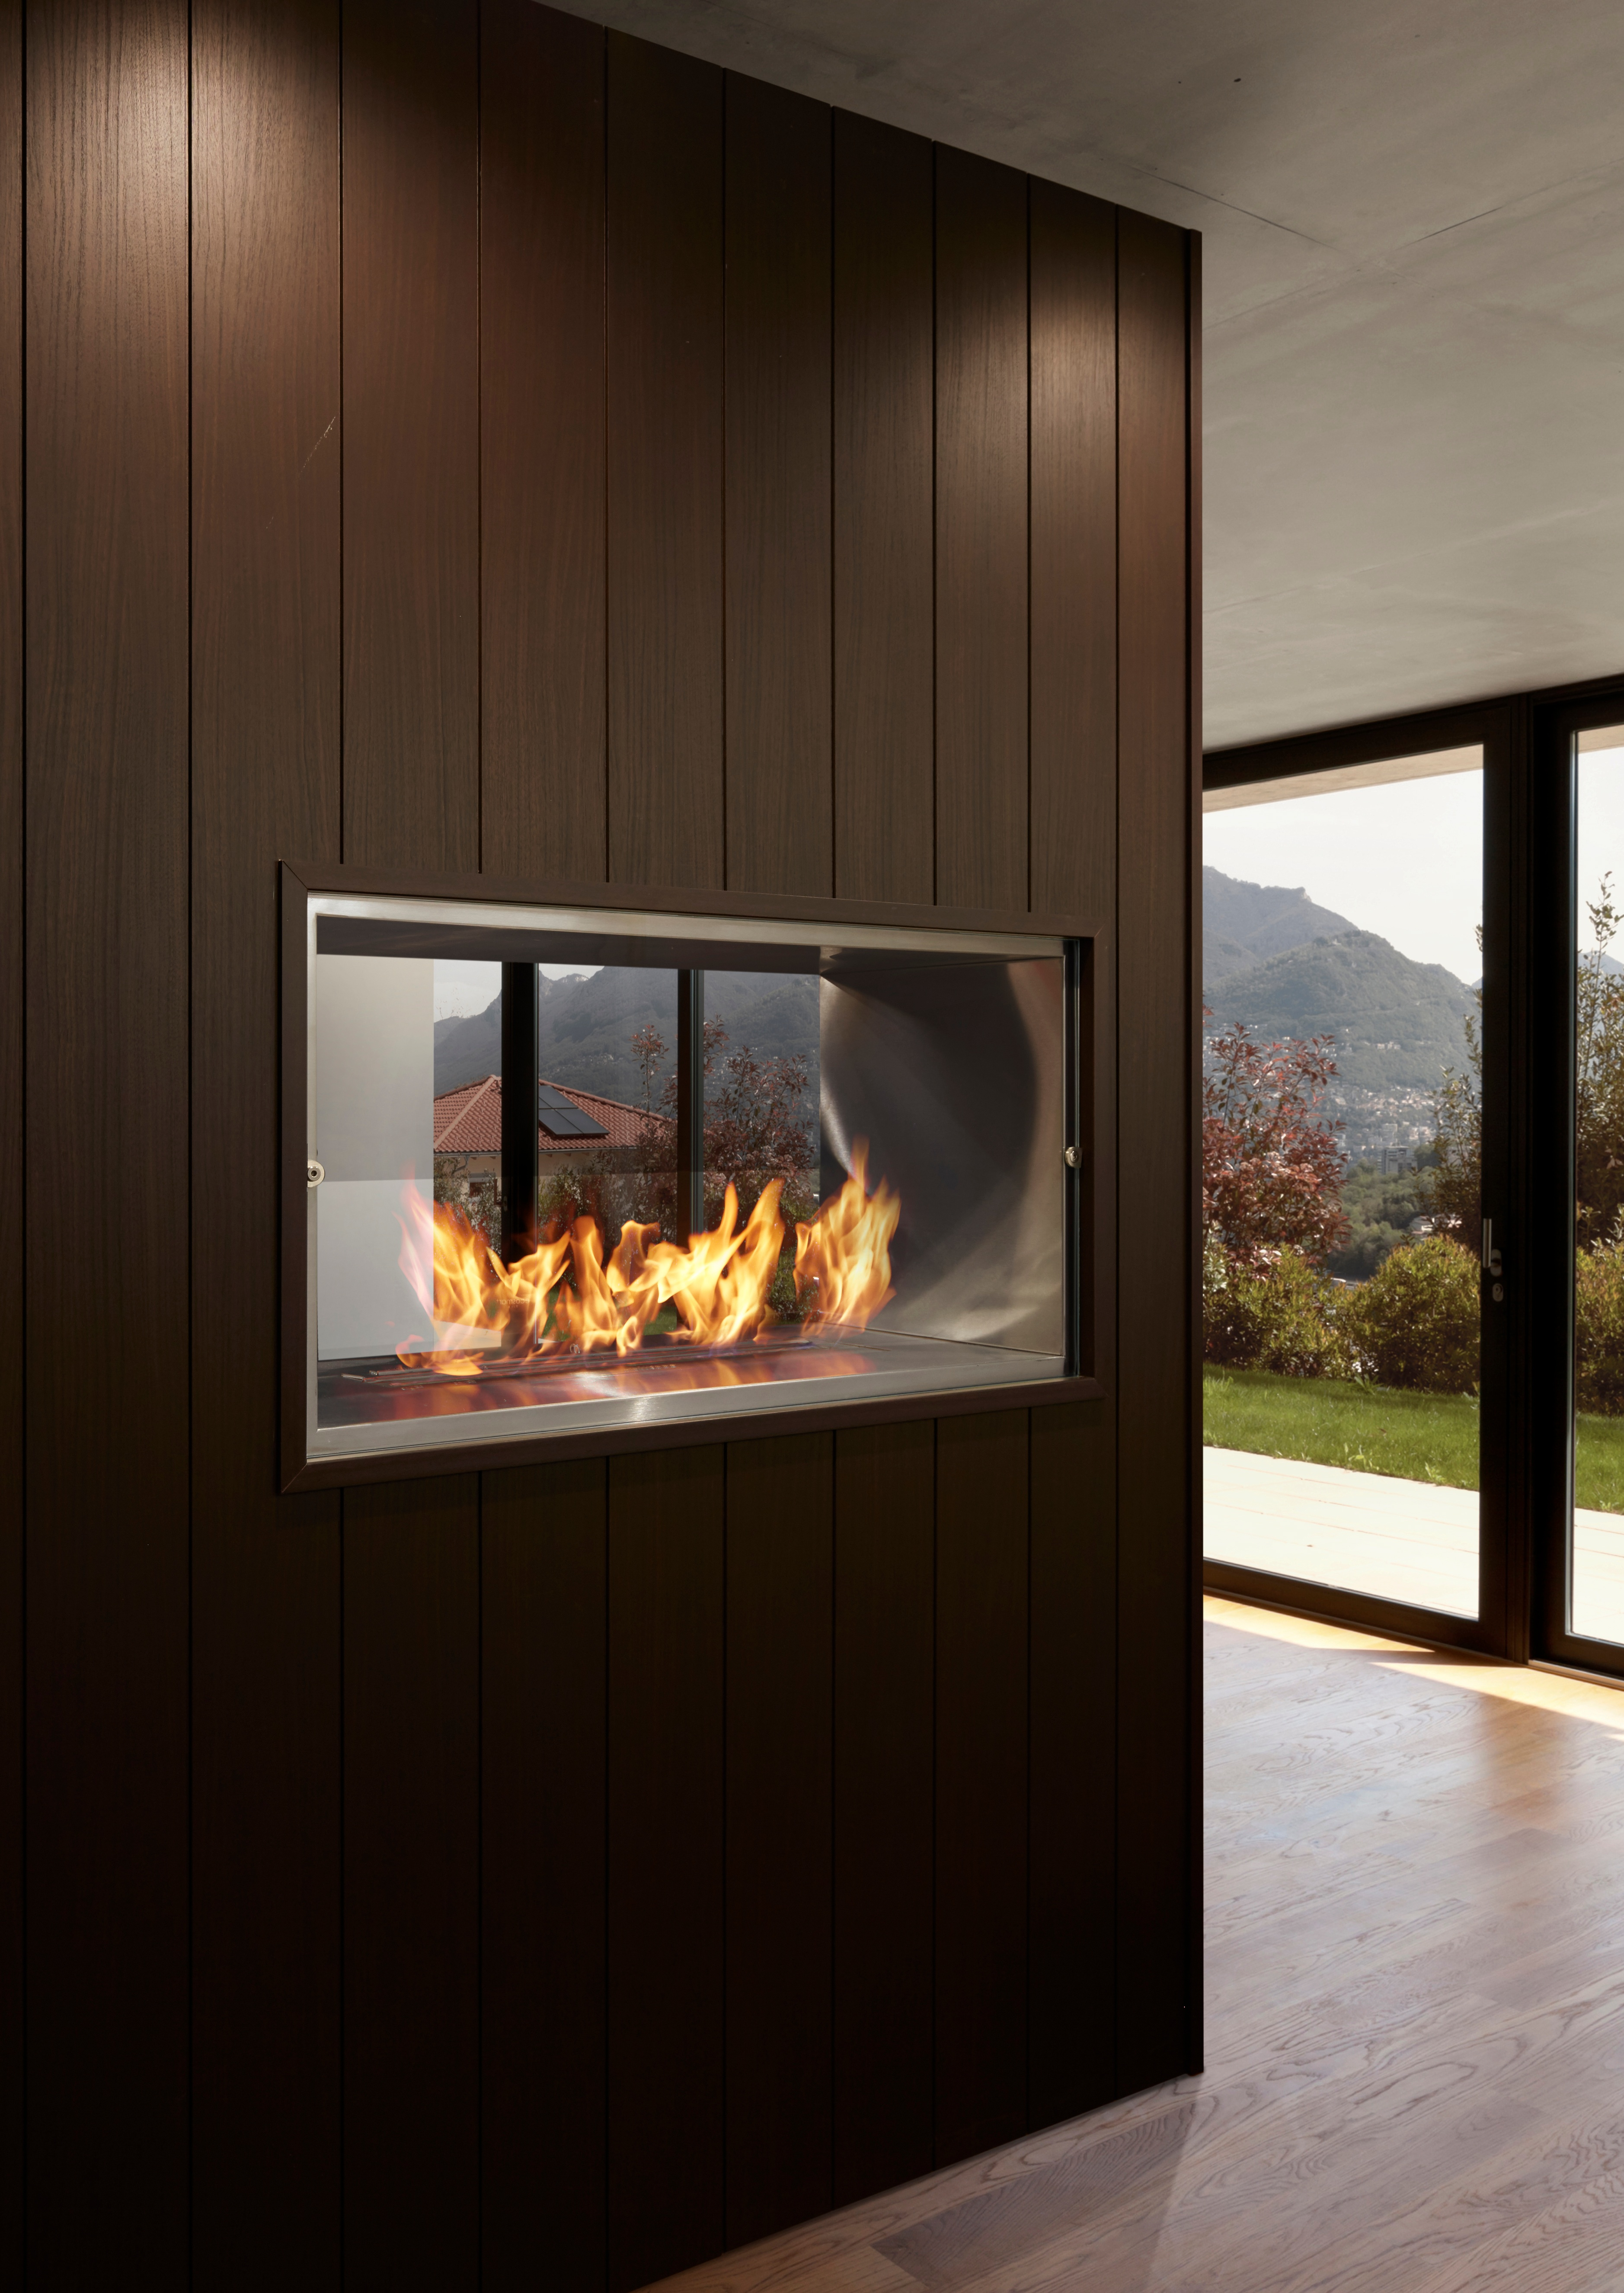 Best Practices For Using Biofuel Fireplaces